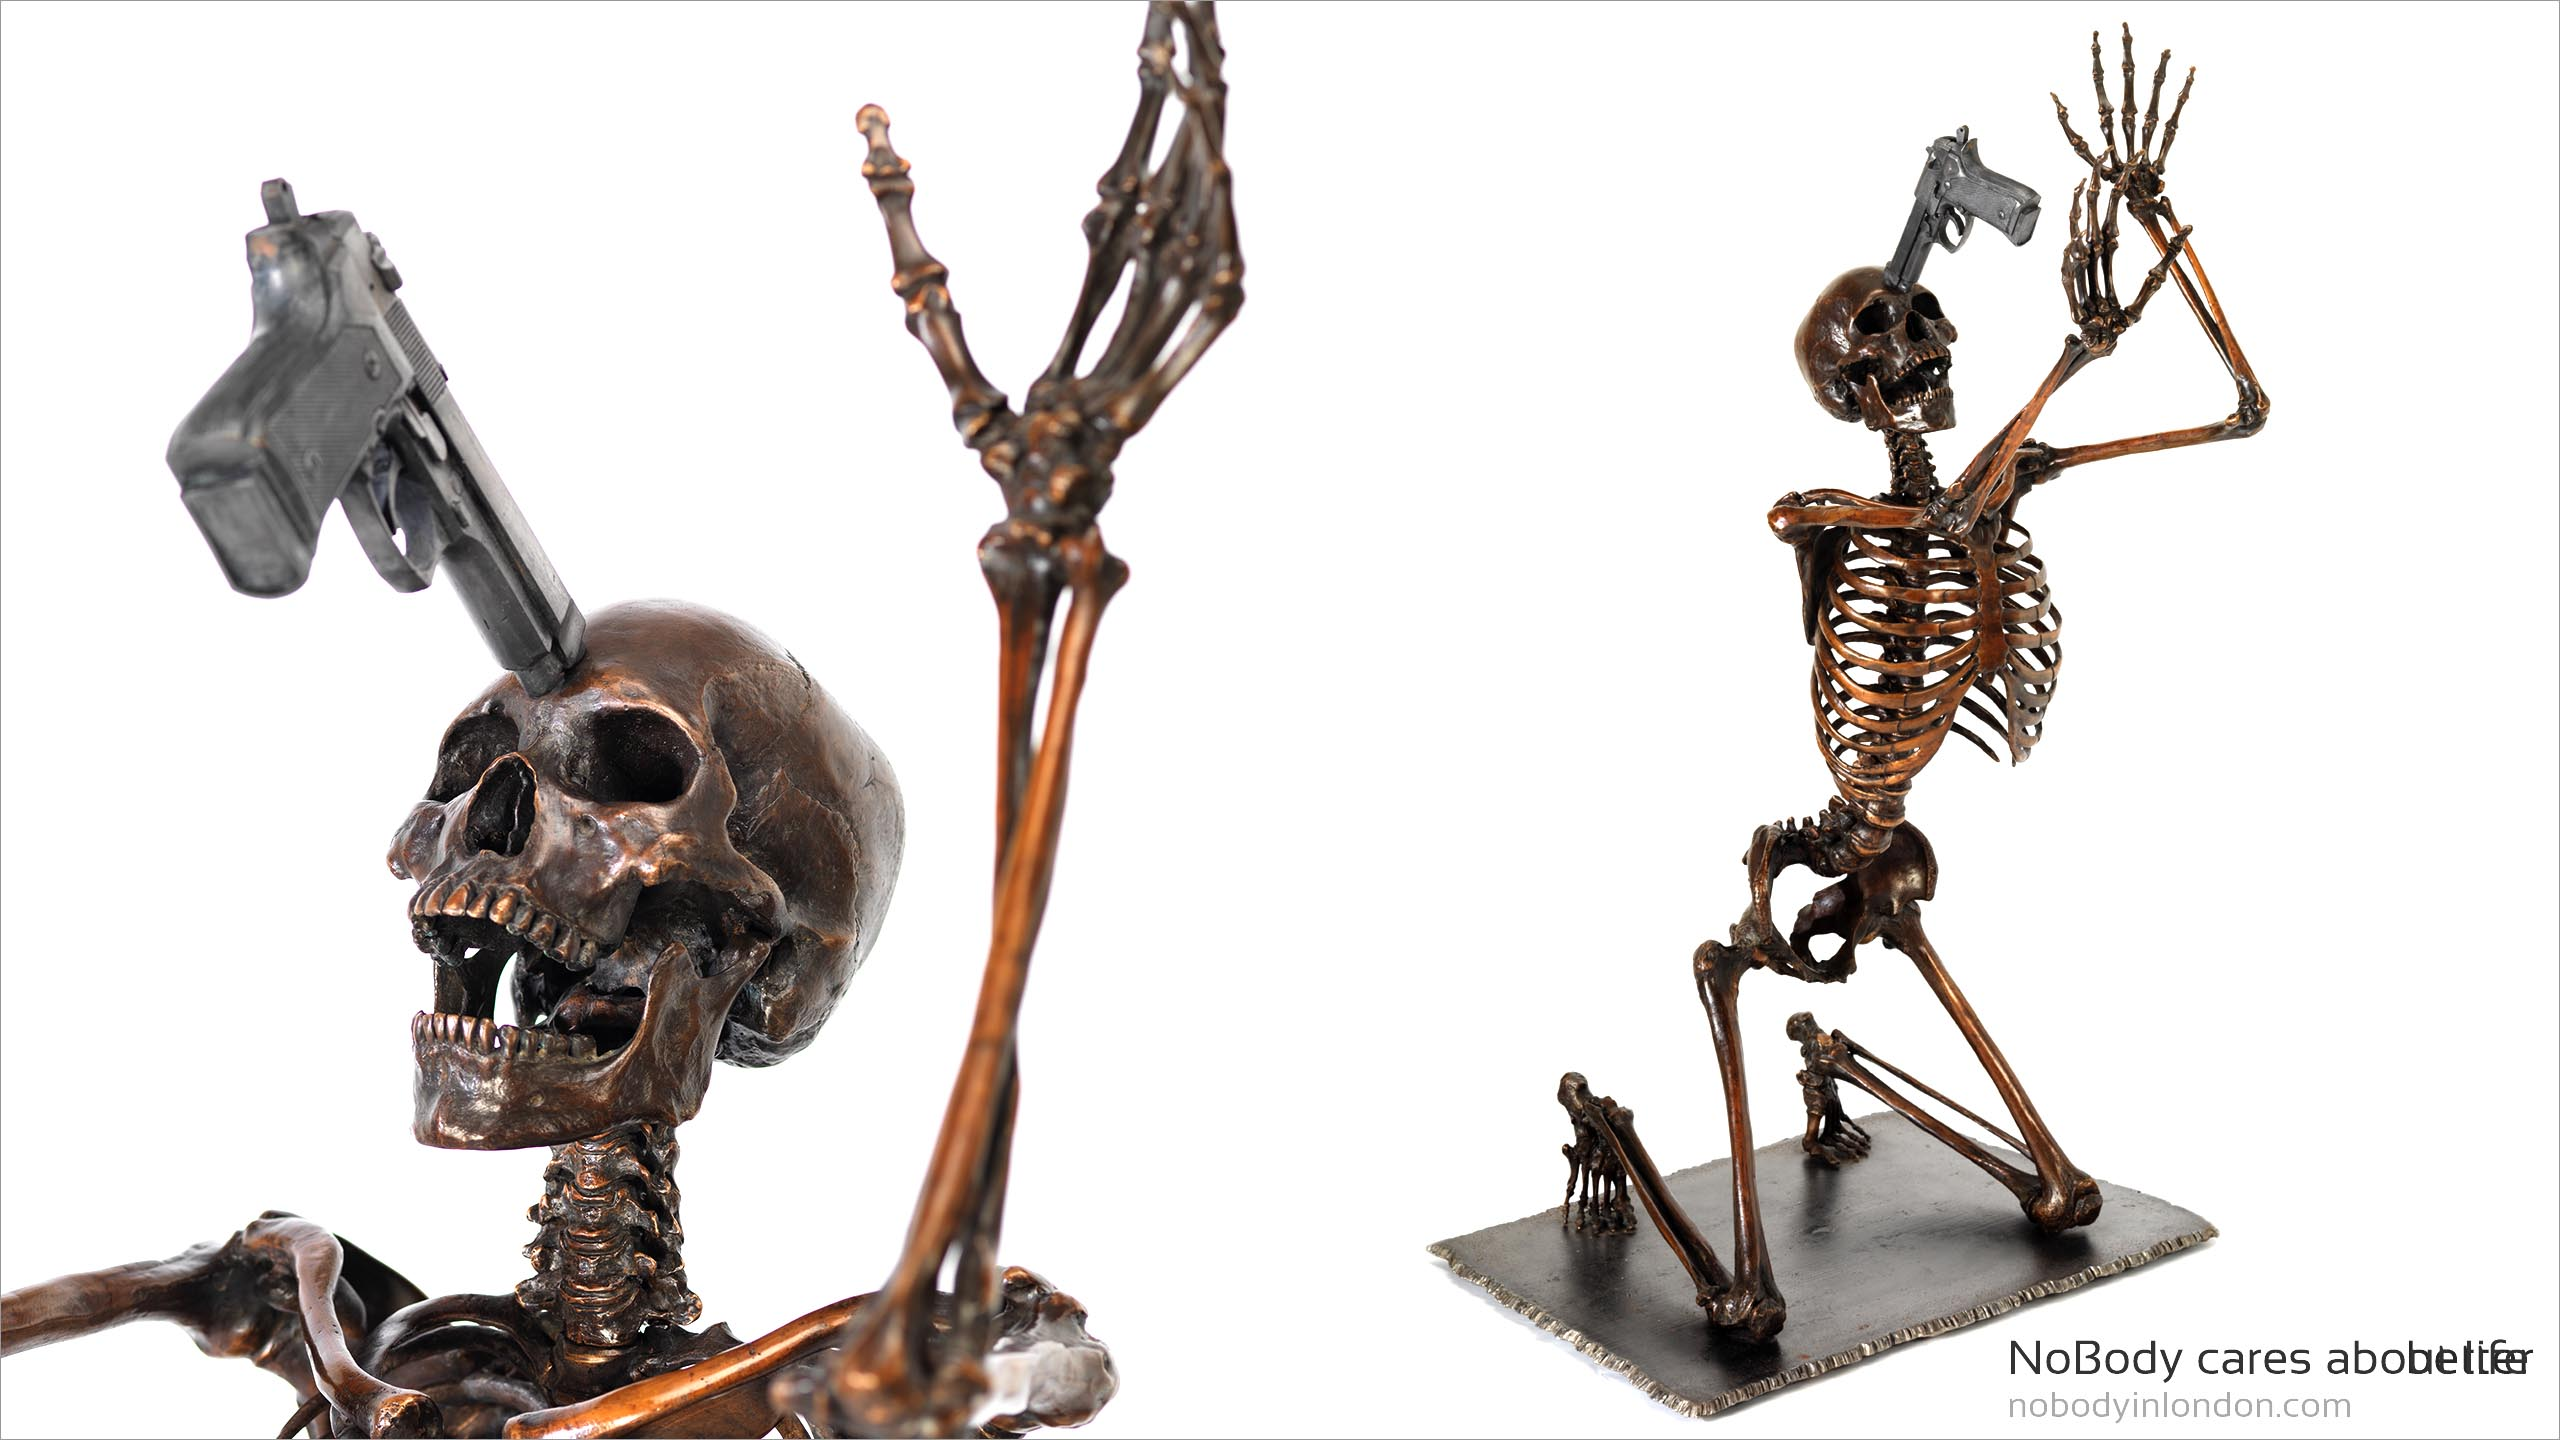 NoBody cares about life, life size fine art bronze skeleton sculpture featuring a gun to its head